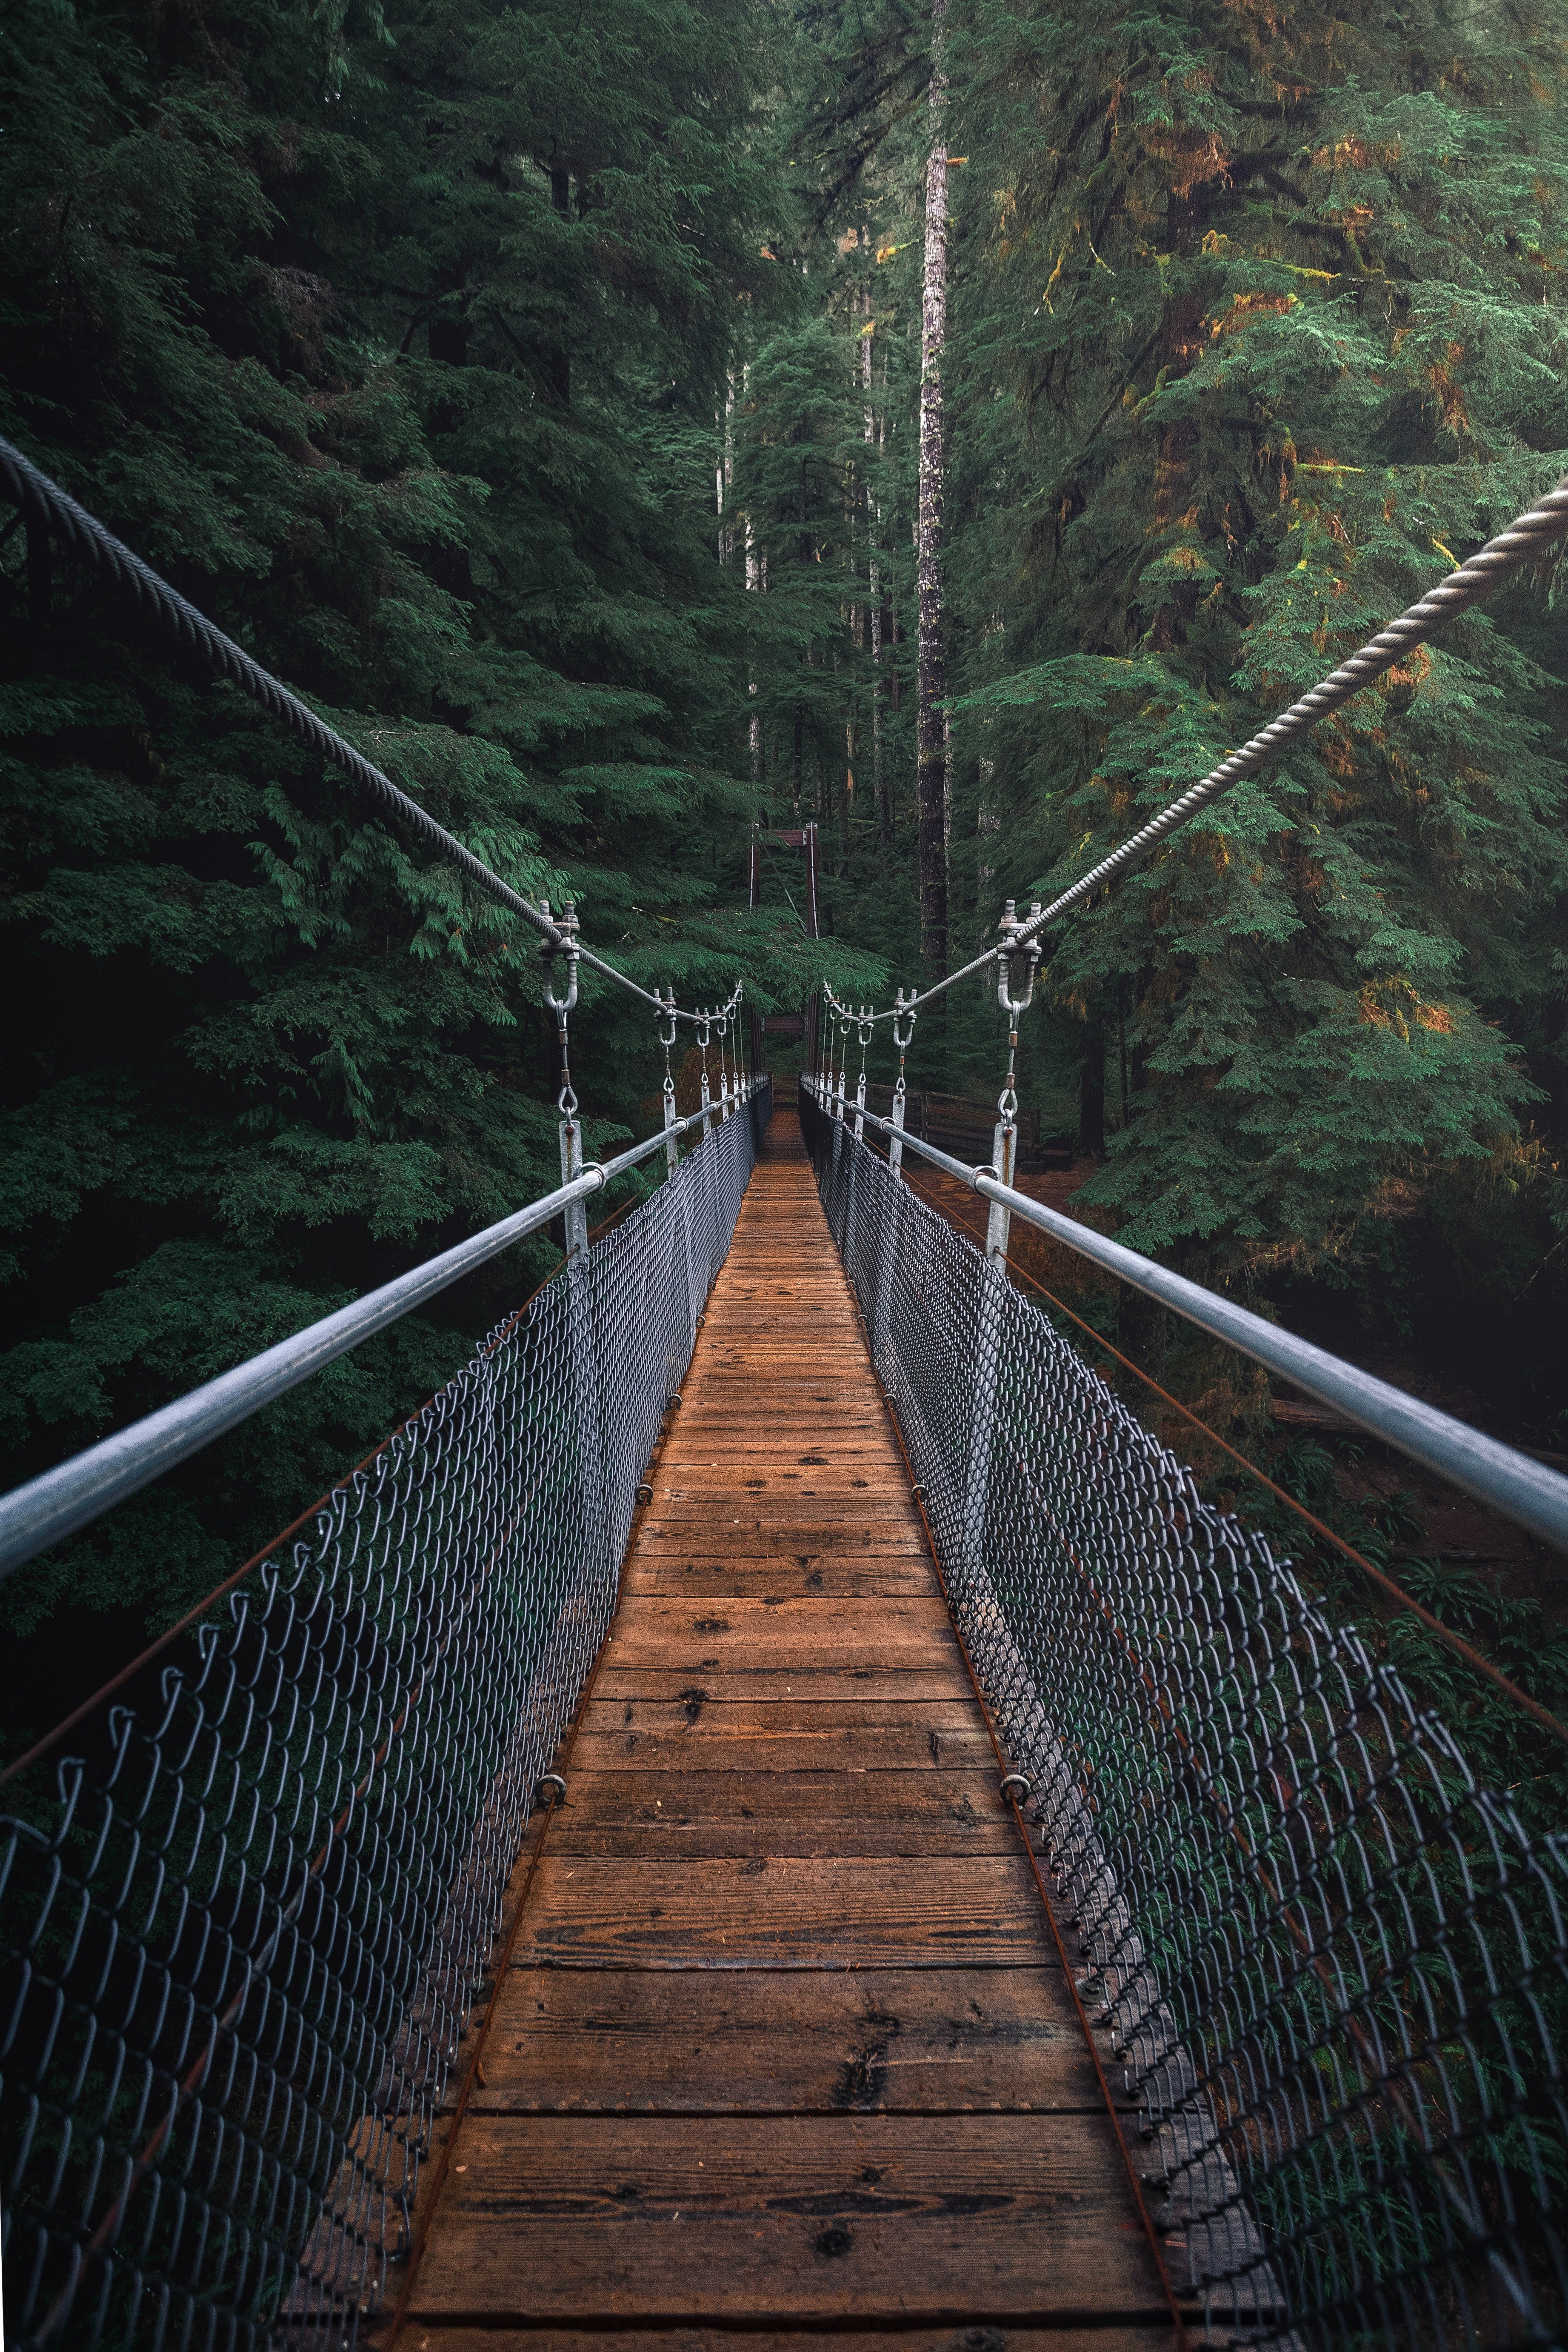 Pictured - An image of a hanging bridge in the forest | Source: Pexels